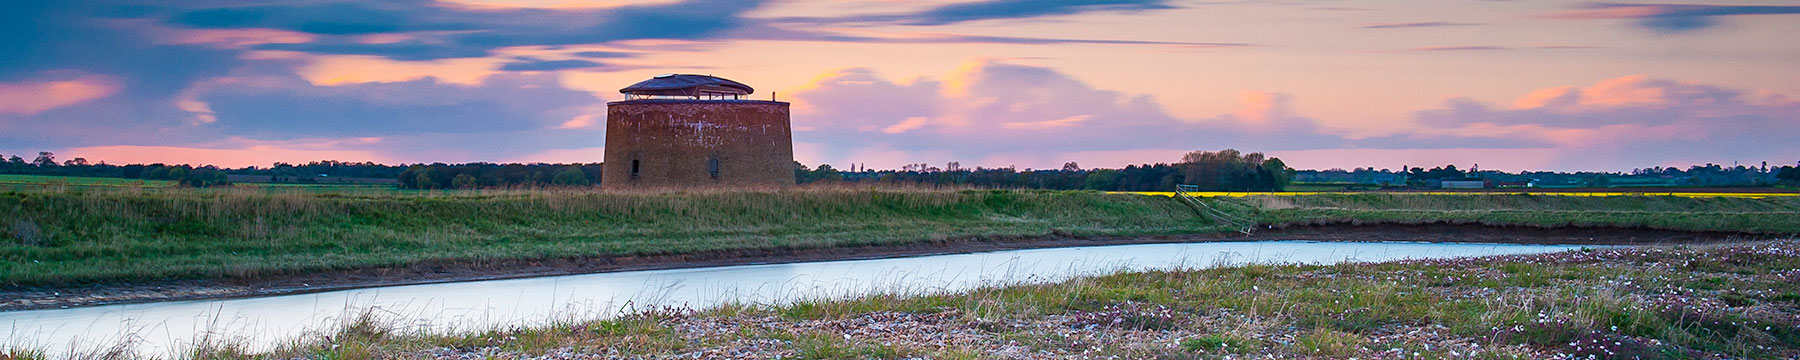 Landscape photo of Martello Tower in Suffolk Coast